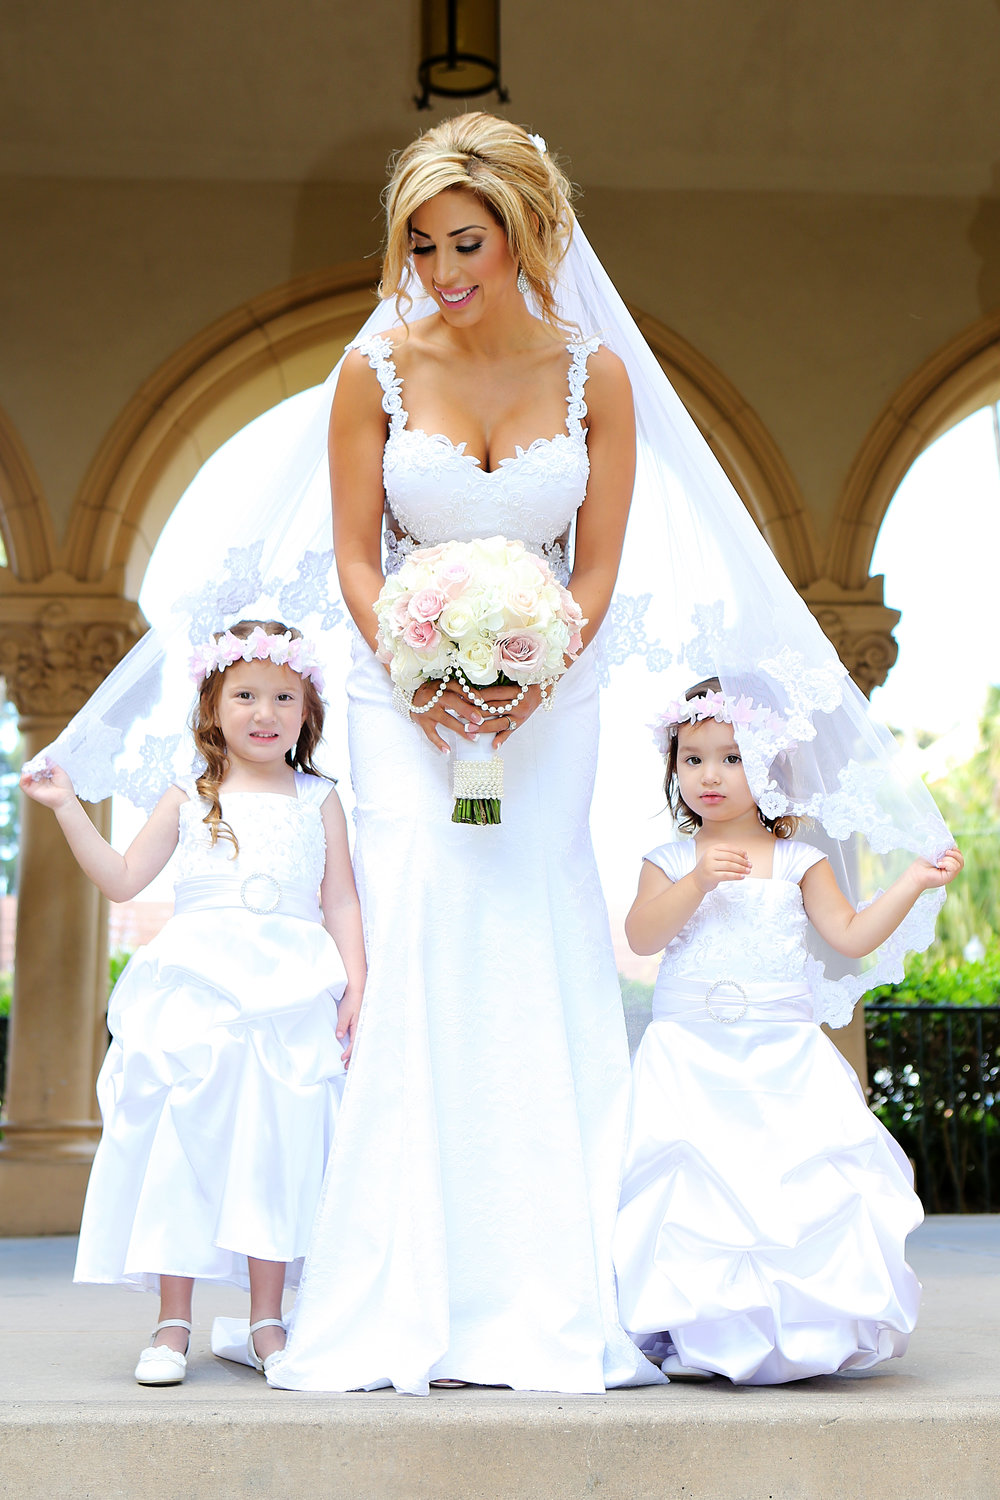 ShadowcatcherGalleryOne_SanDiegoWeddingPhotogrpaher_020.JPG